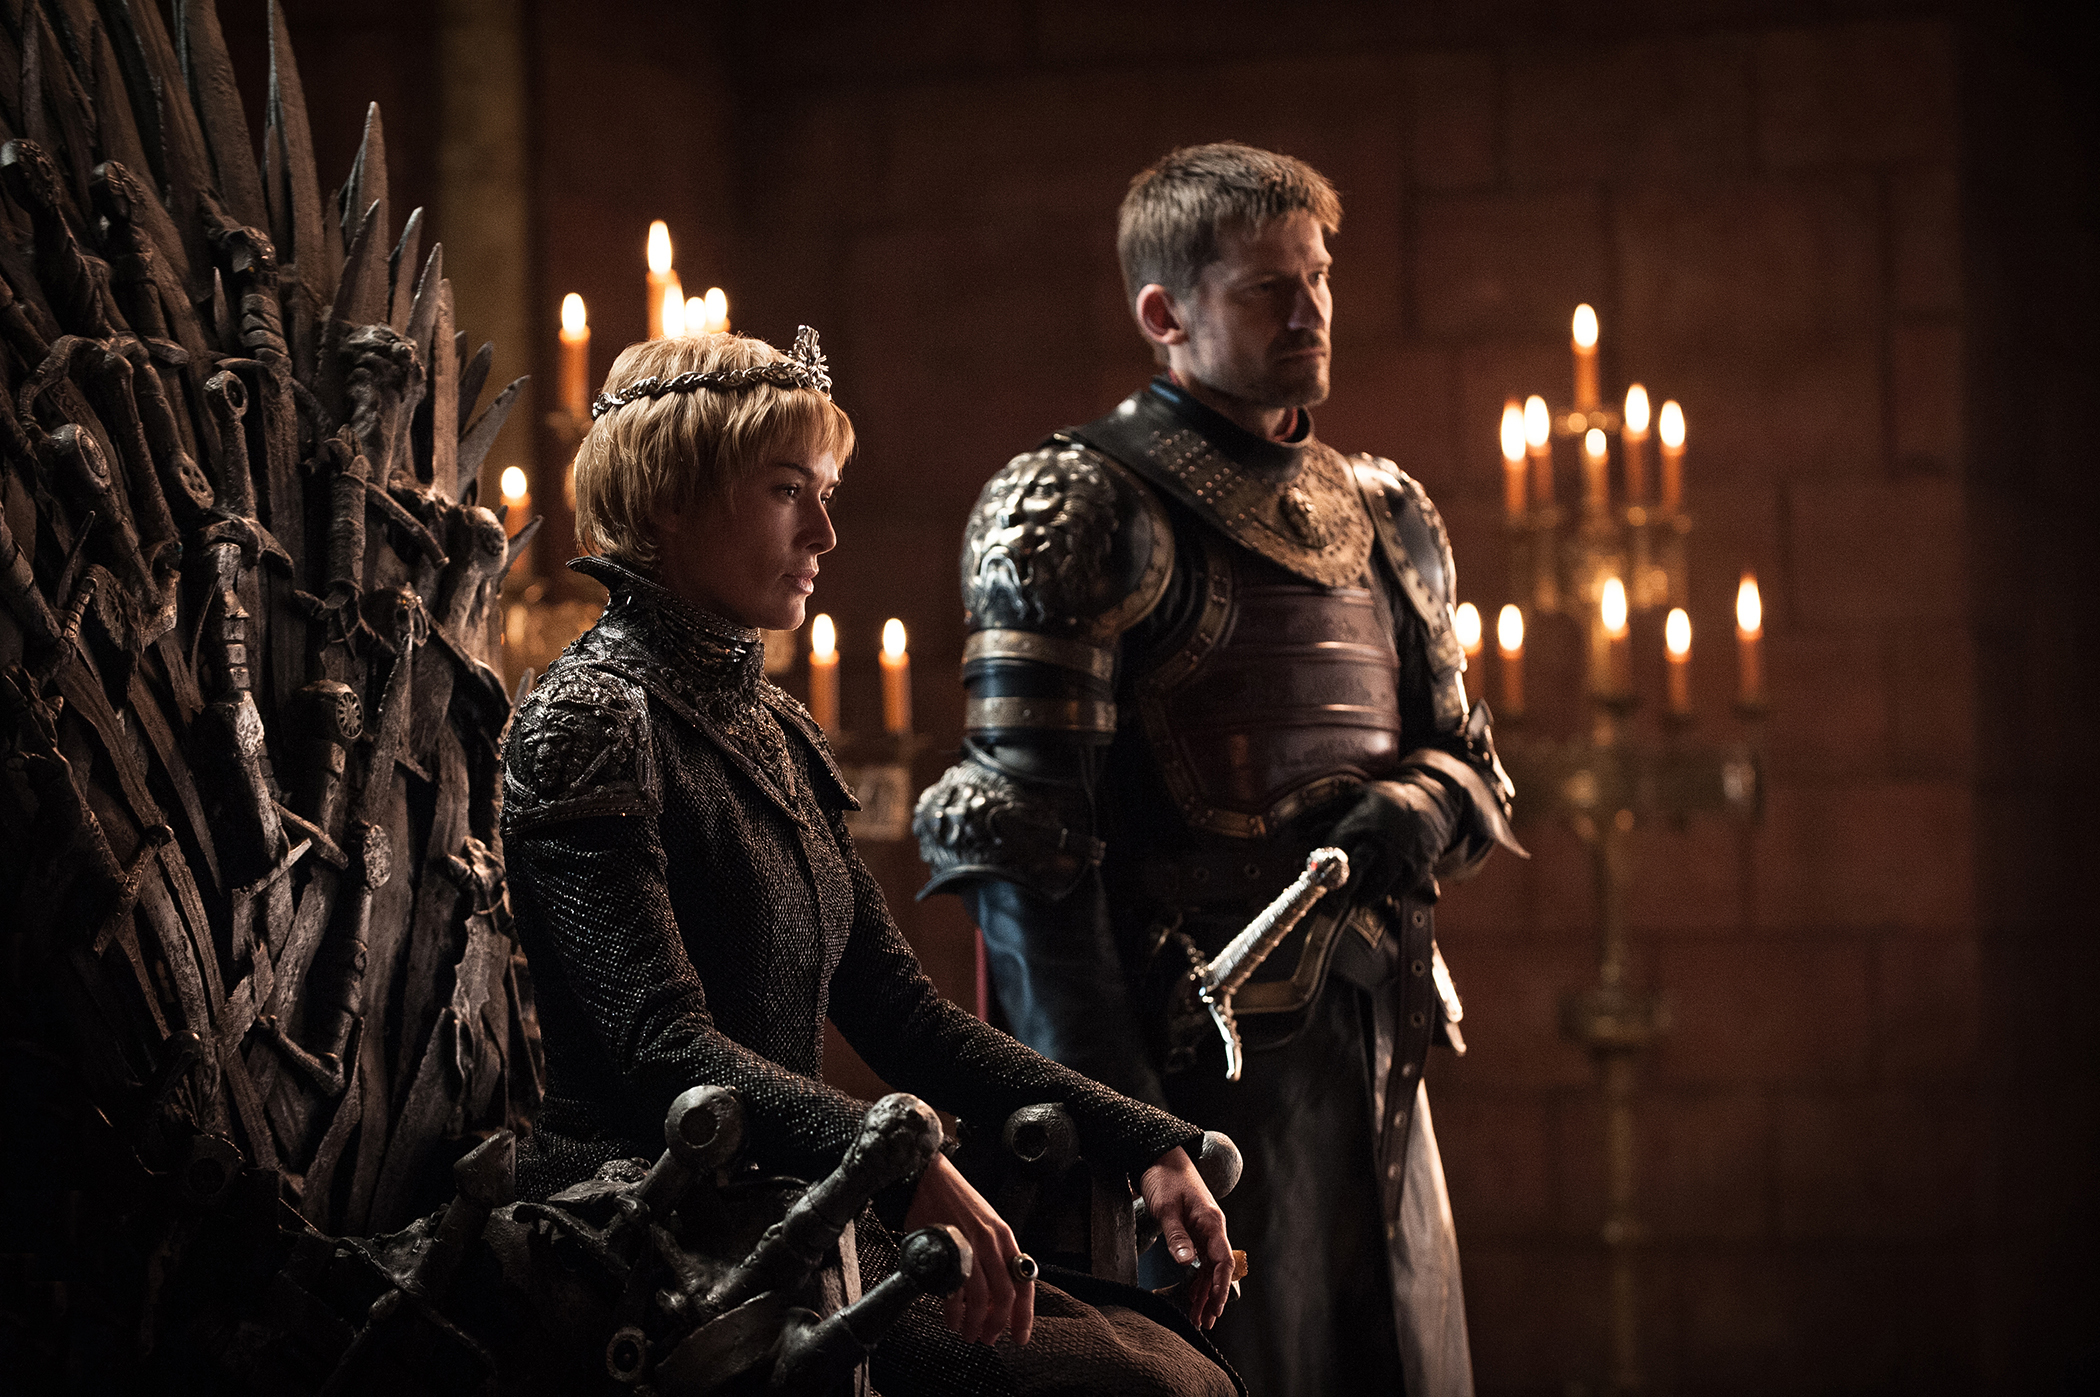 Lena Headey and Nikolaj Coster-Waldau in season 7 of Game of Thrones.